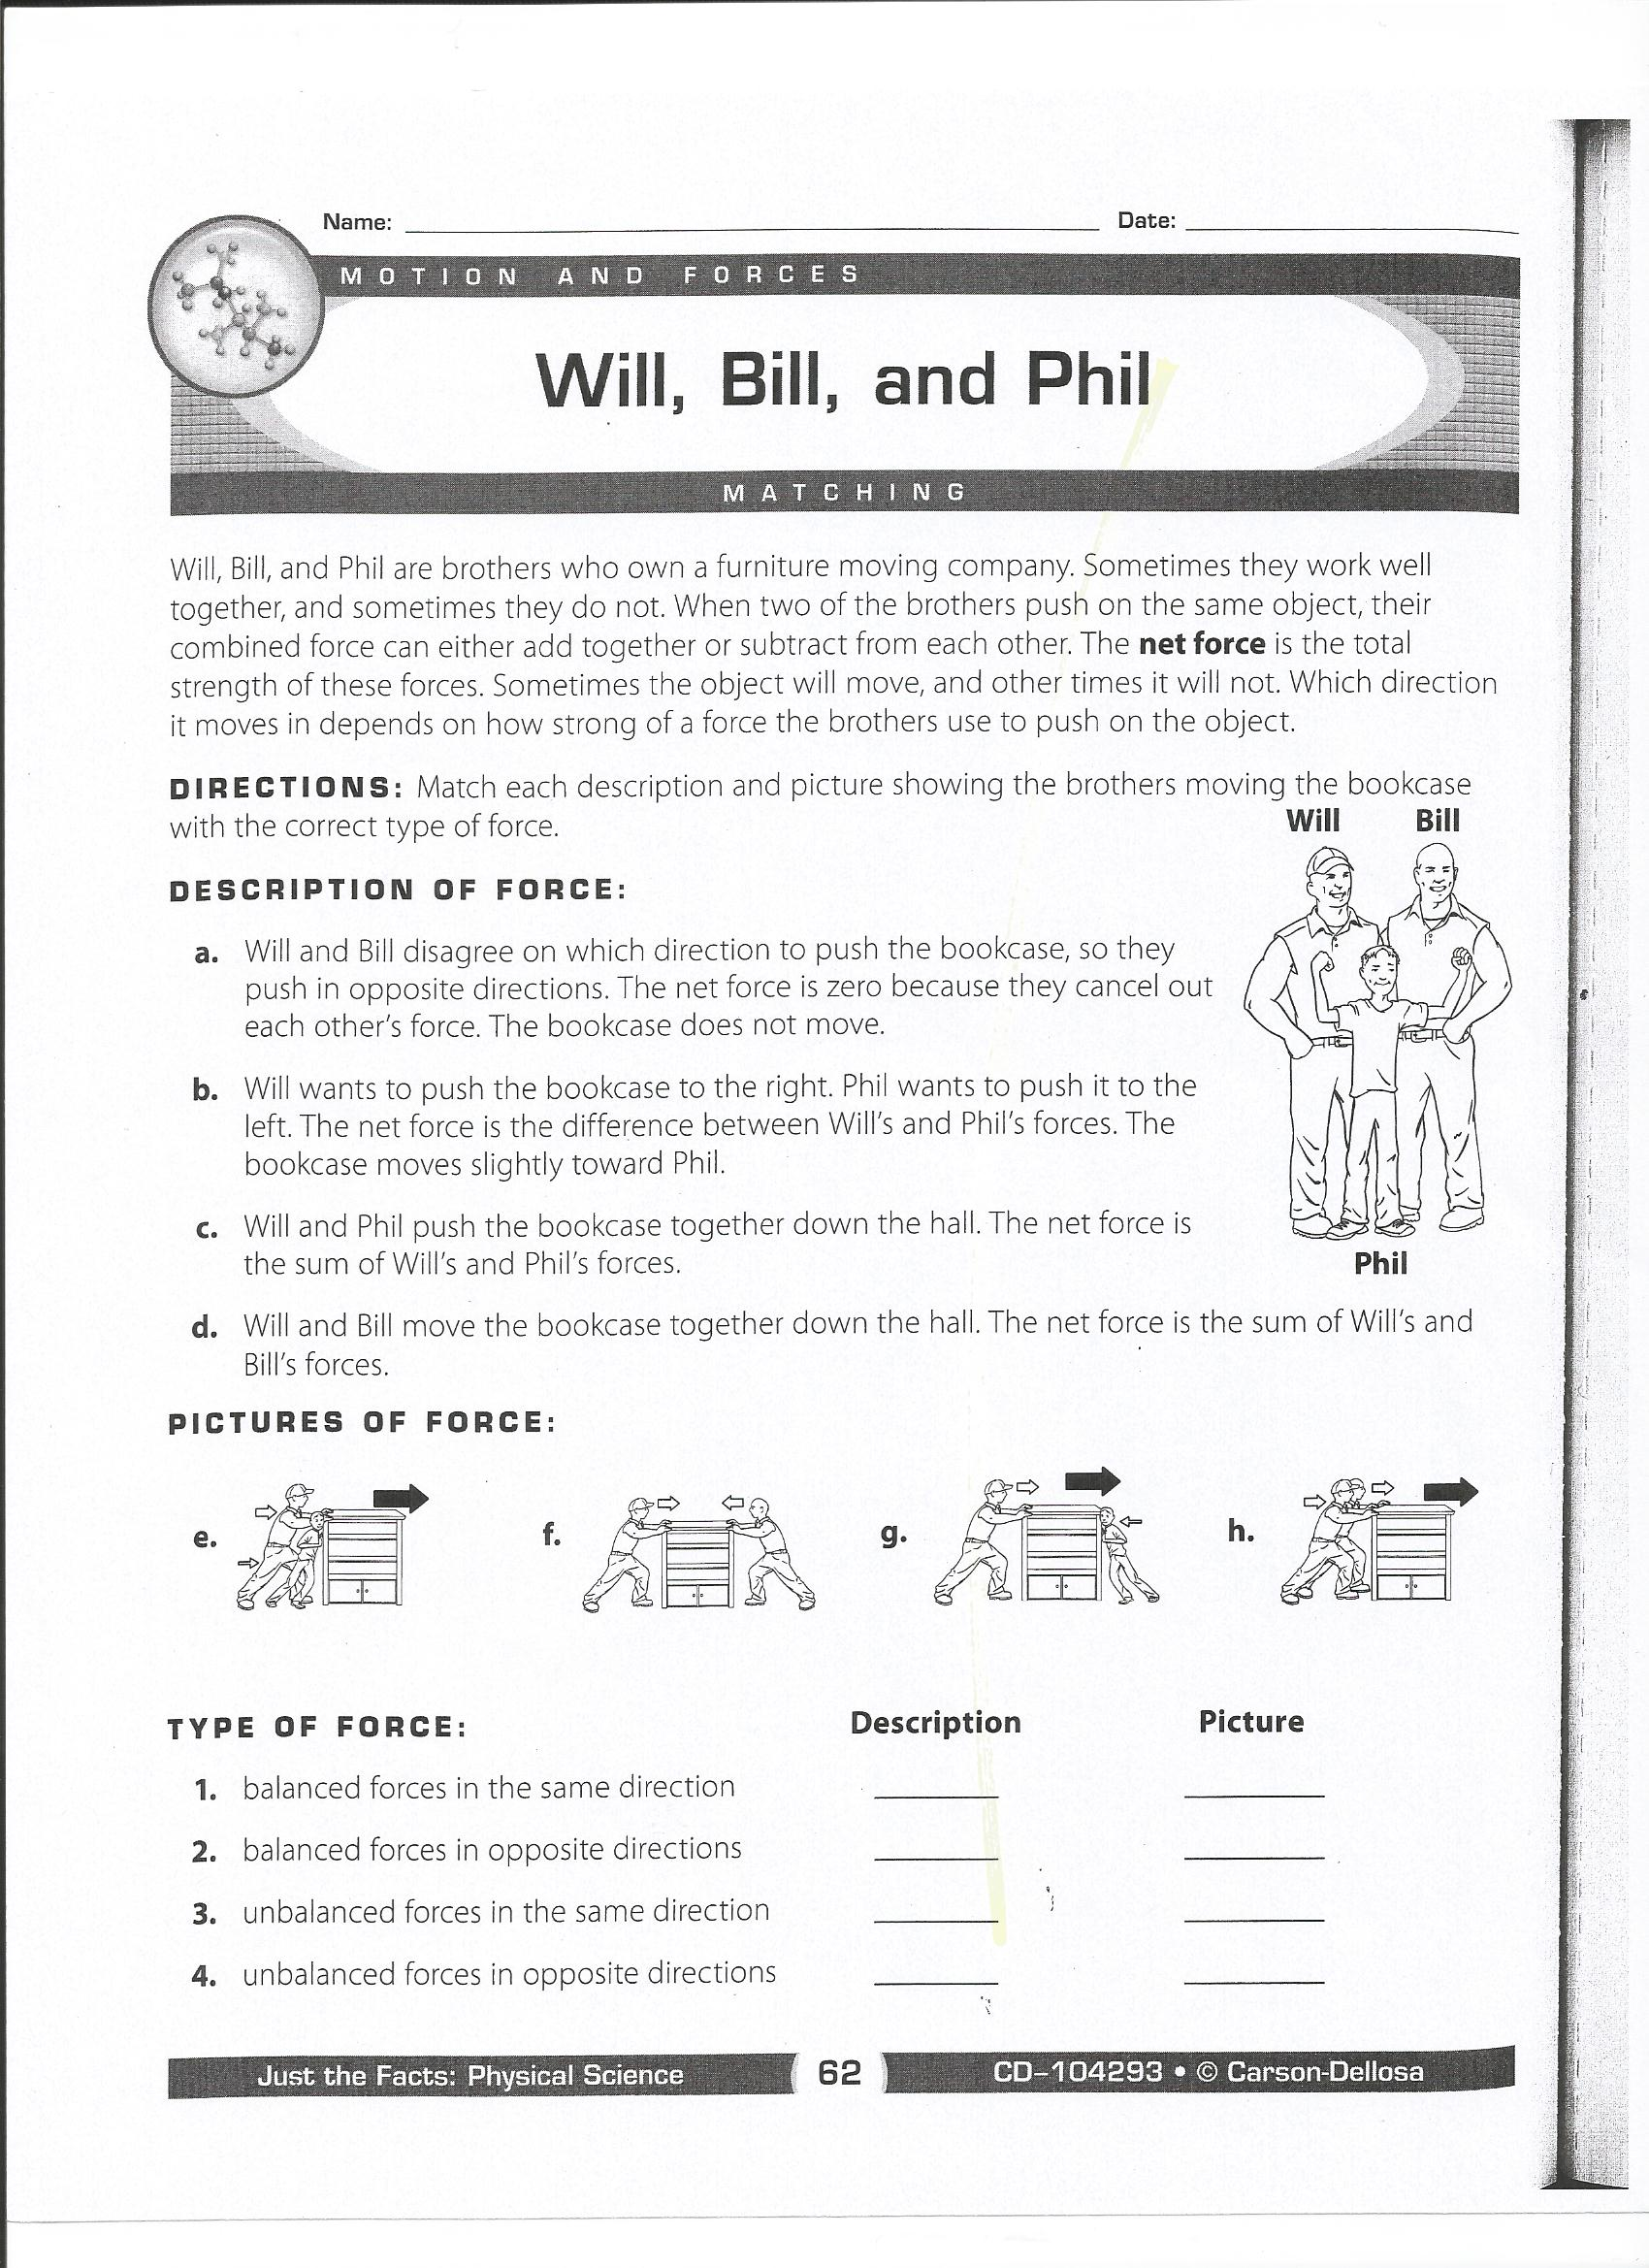 Worksheets Force And Motion Worksheets For Middle School forces and motion worksheet free worksheets library download 19 fun ideas